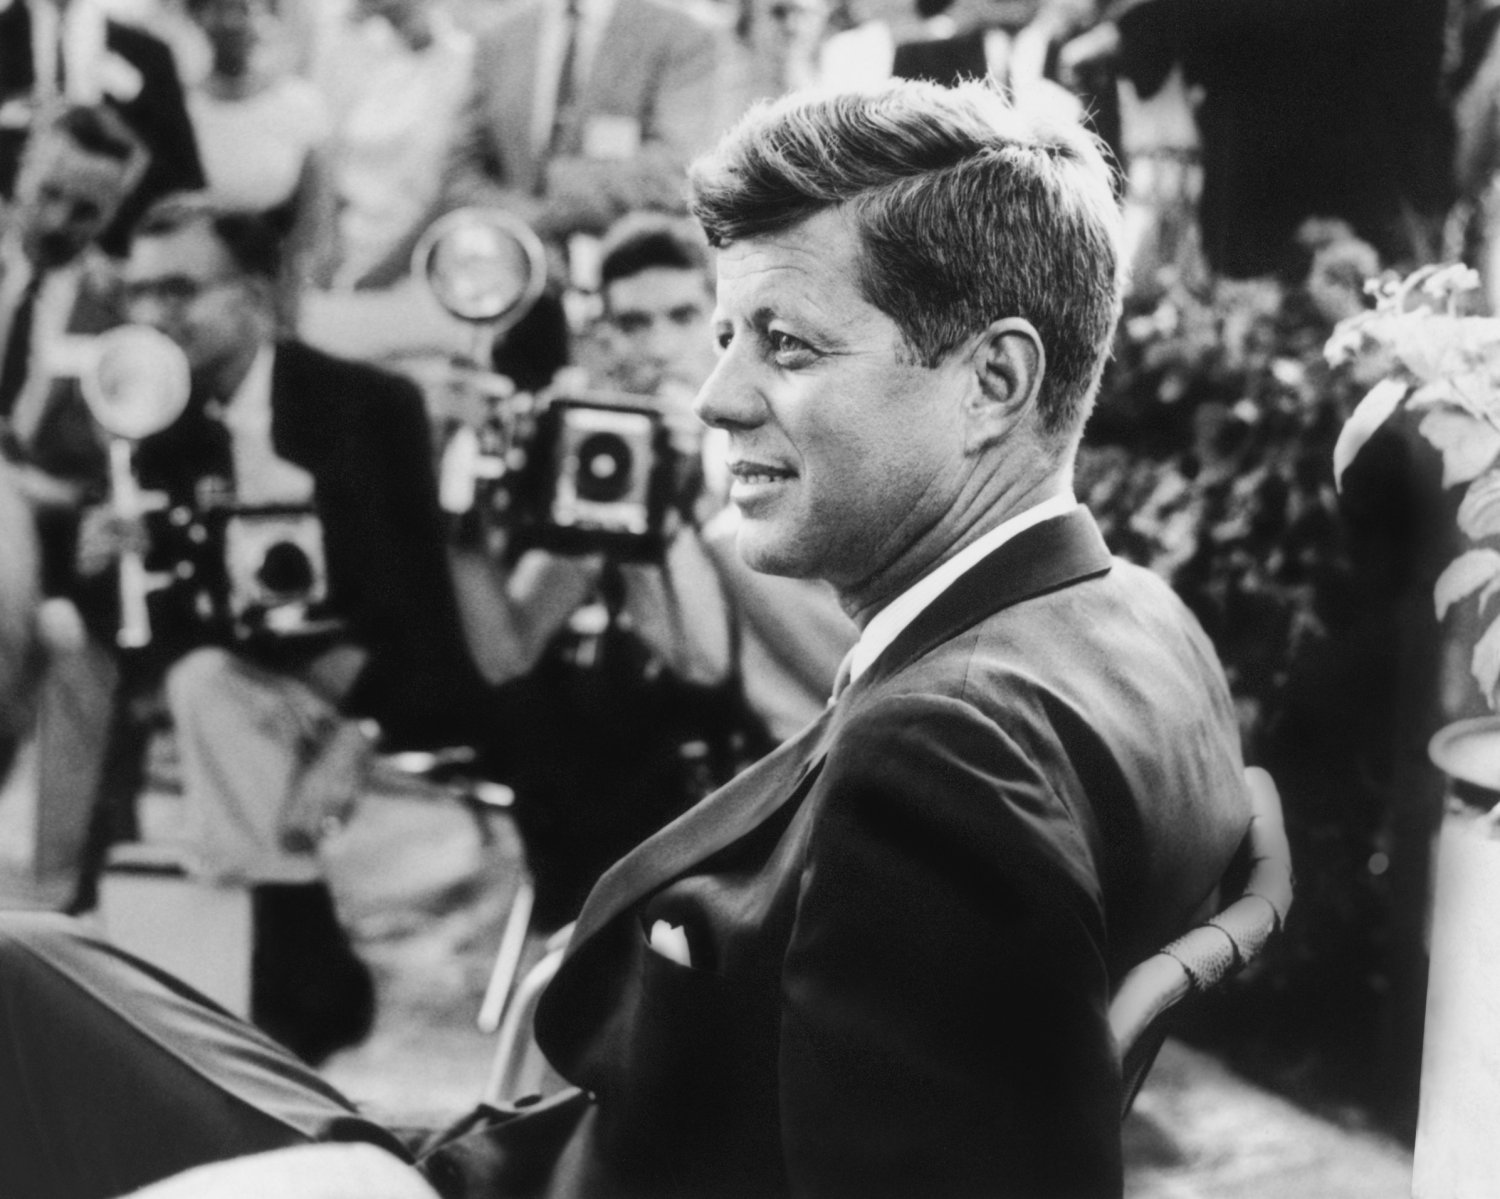 john f kennedy won the presidency because he better represented the american perception of beauty John f kennedy was sailing through the 1960 presidential primaries on his way to the democratic nomination but he had a problem: a majority of african-americans were not voting for him.